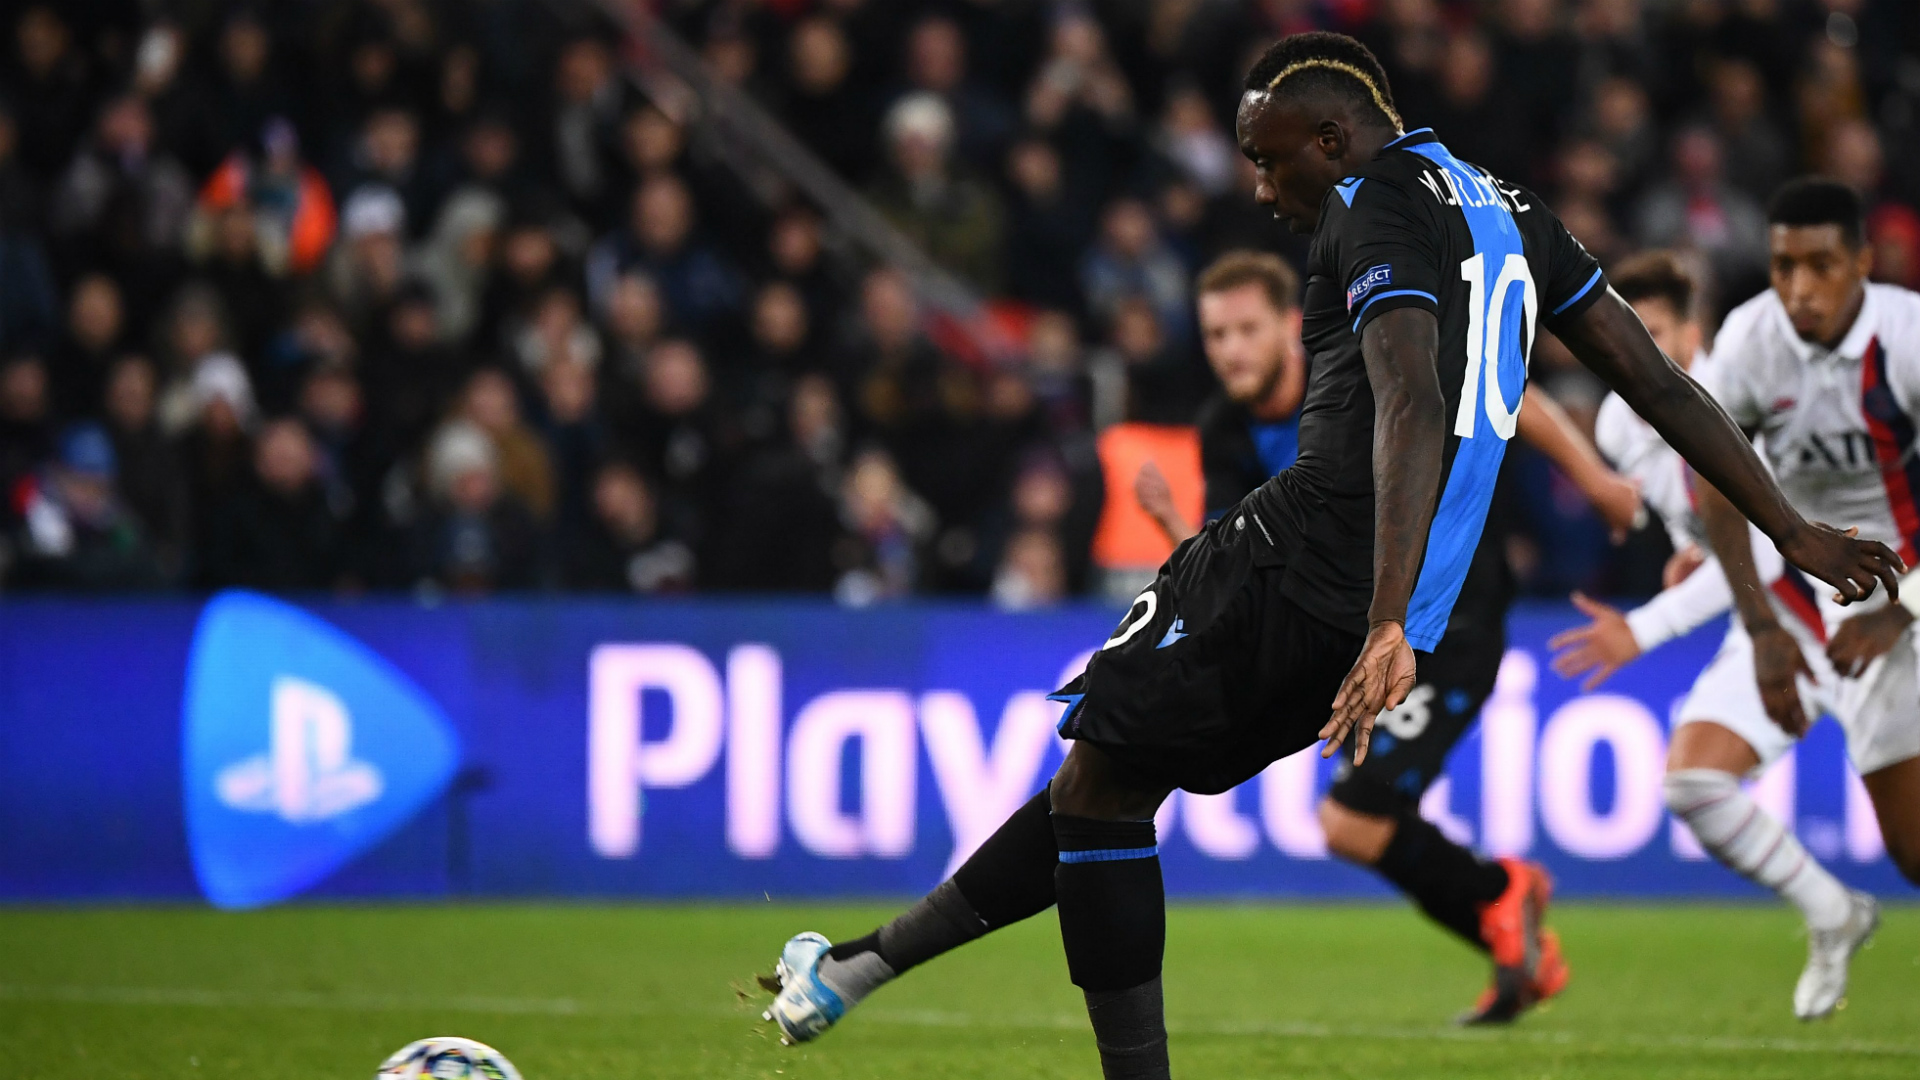 Club Brugge punish Diagne for missing penalty against PSG